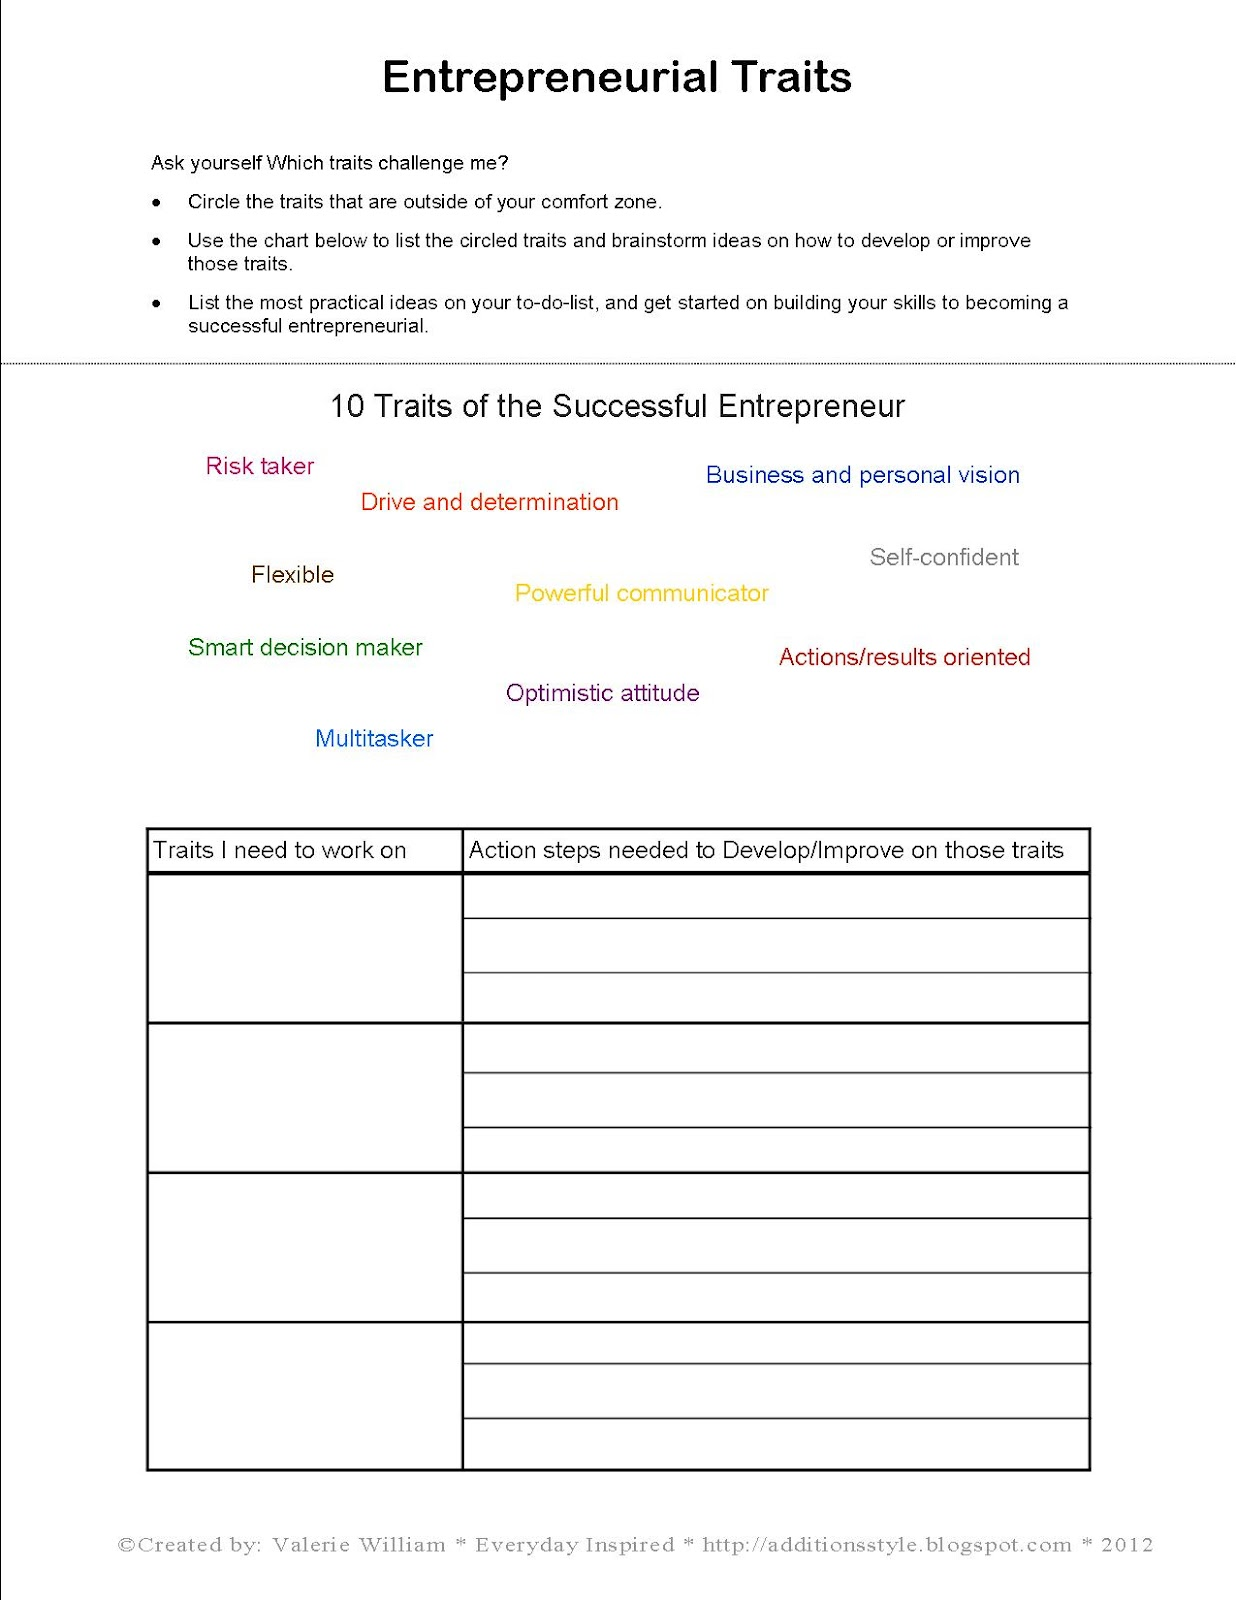 Everyday Inspired Traits Of A Successful Entrepreneur